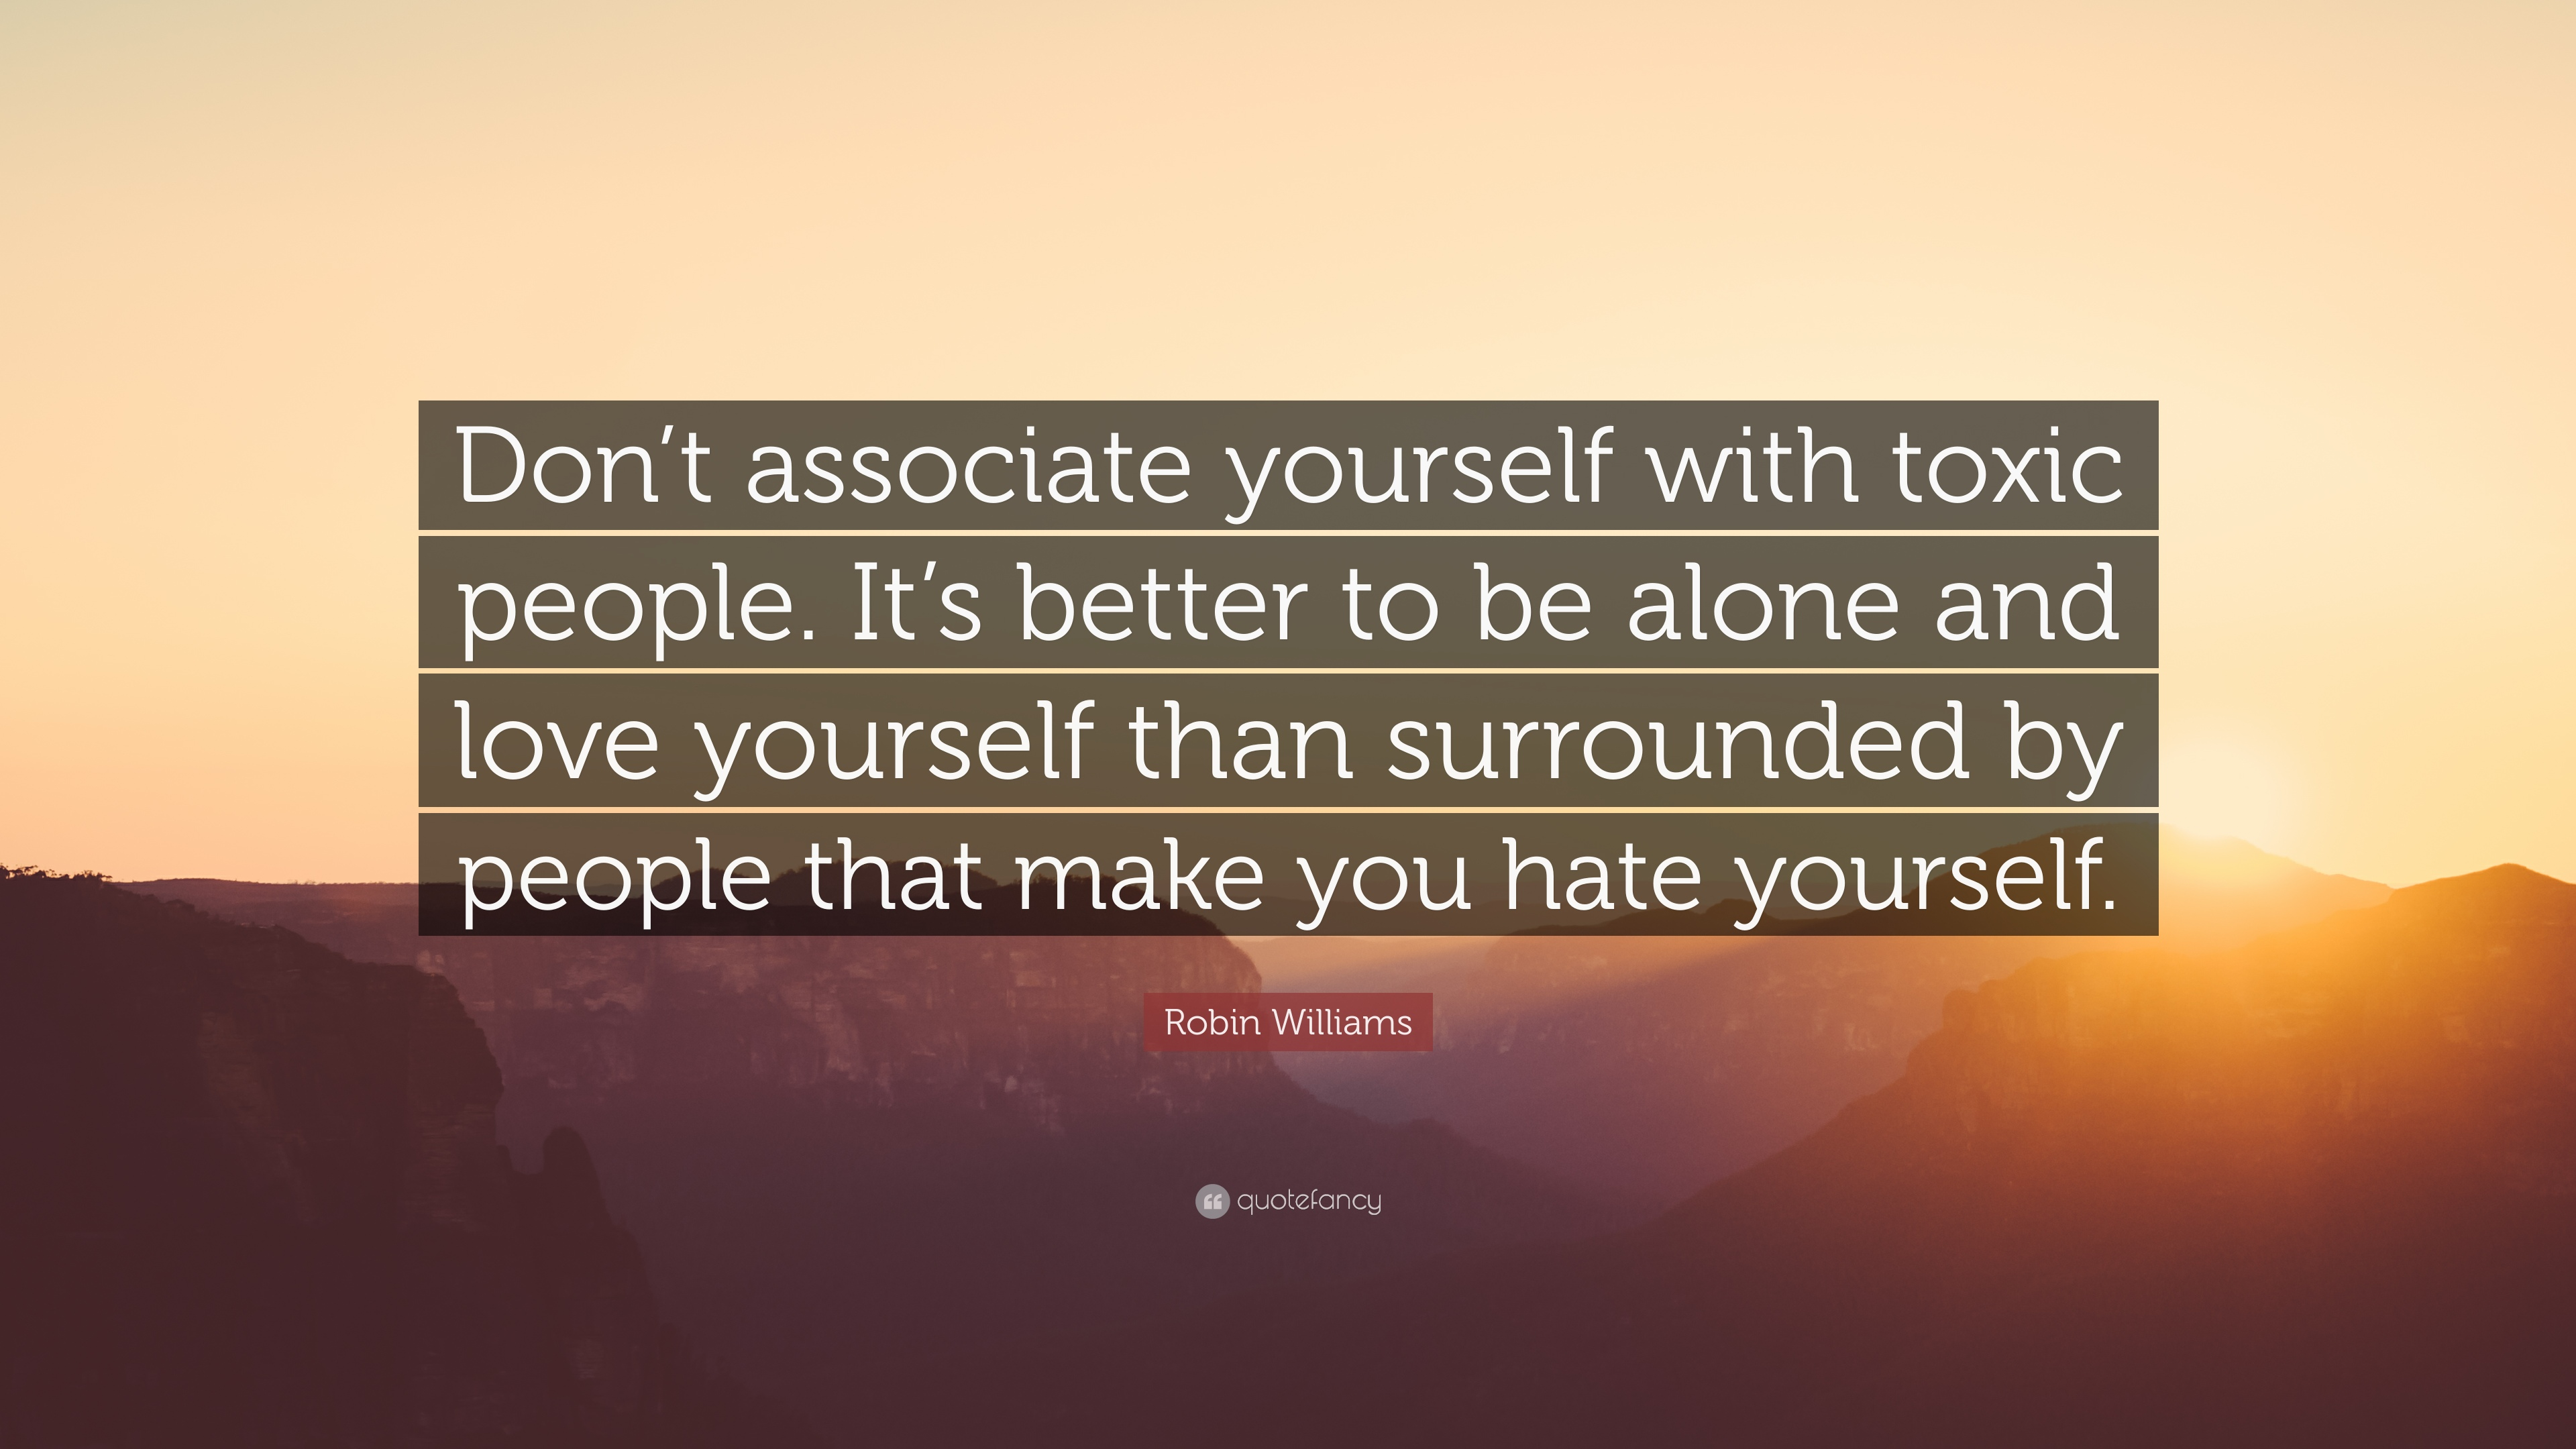 Quotes About Jealous People Hate Quotes 40 Wallpapers  Quotefancy